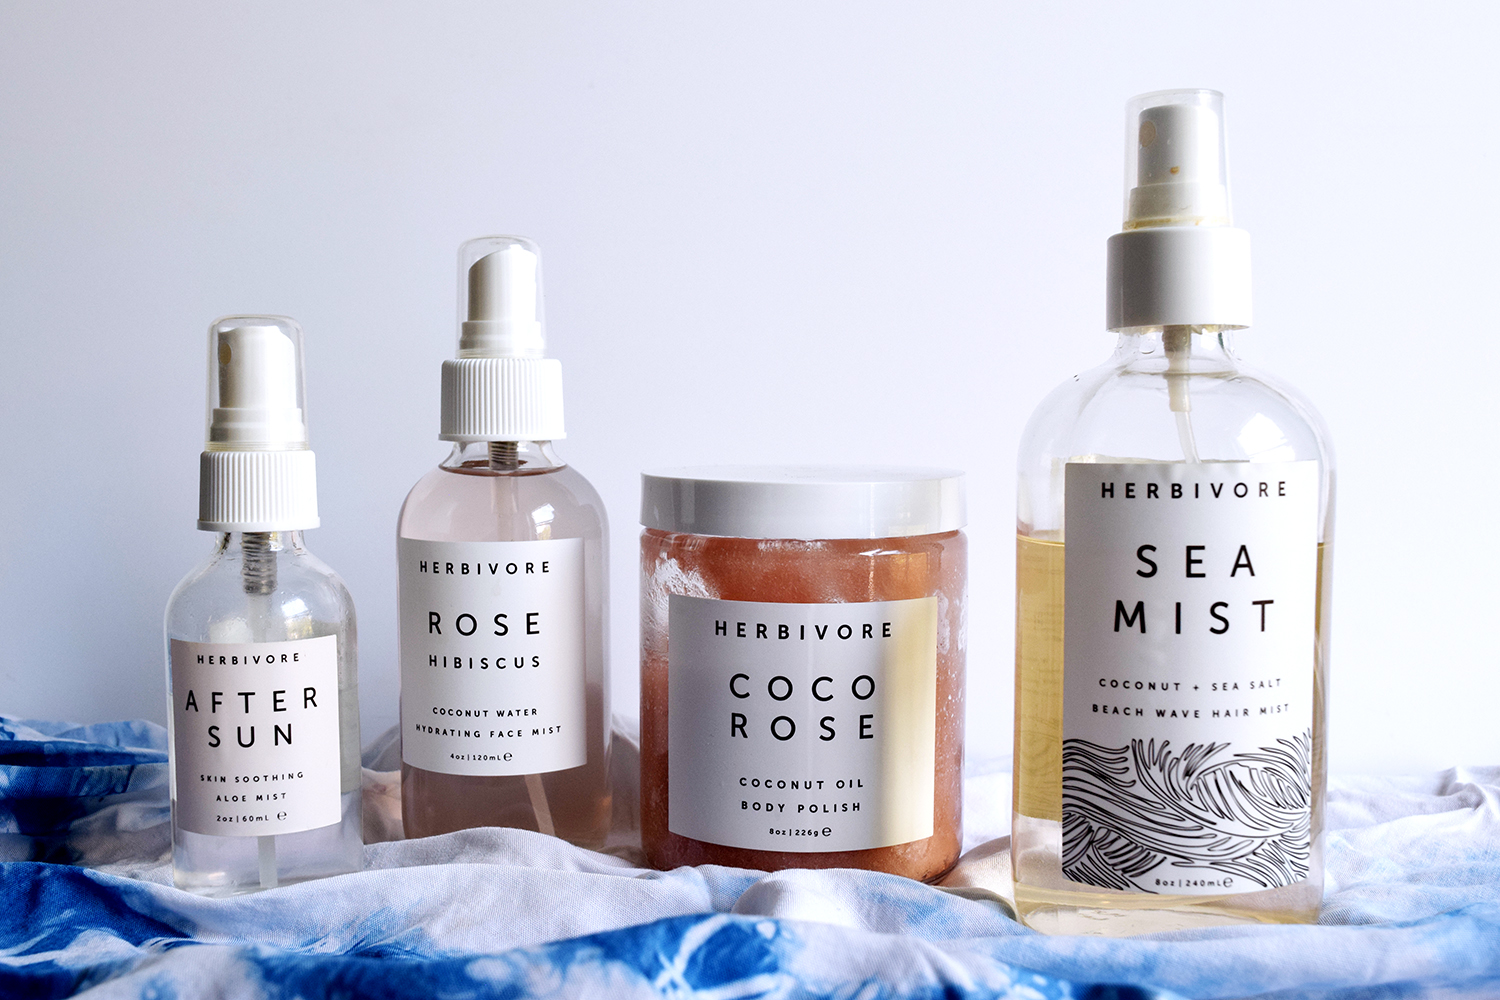 Herbivore Botanicals summer beauty products. After sun spray, rose hibiscus face mist, coco rose body scrub, sea salt hair mist dry shampoo.